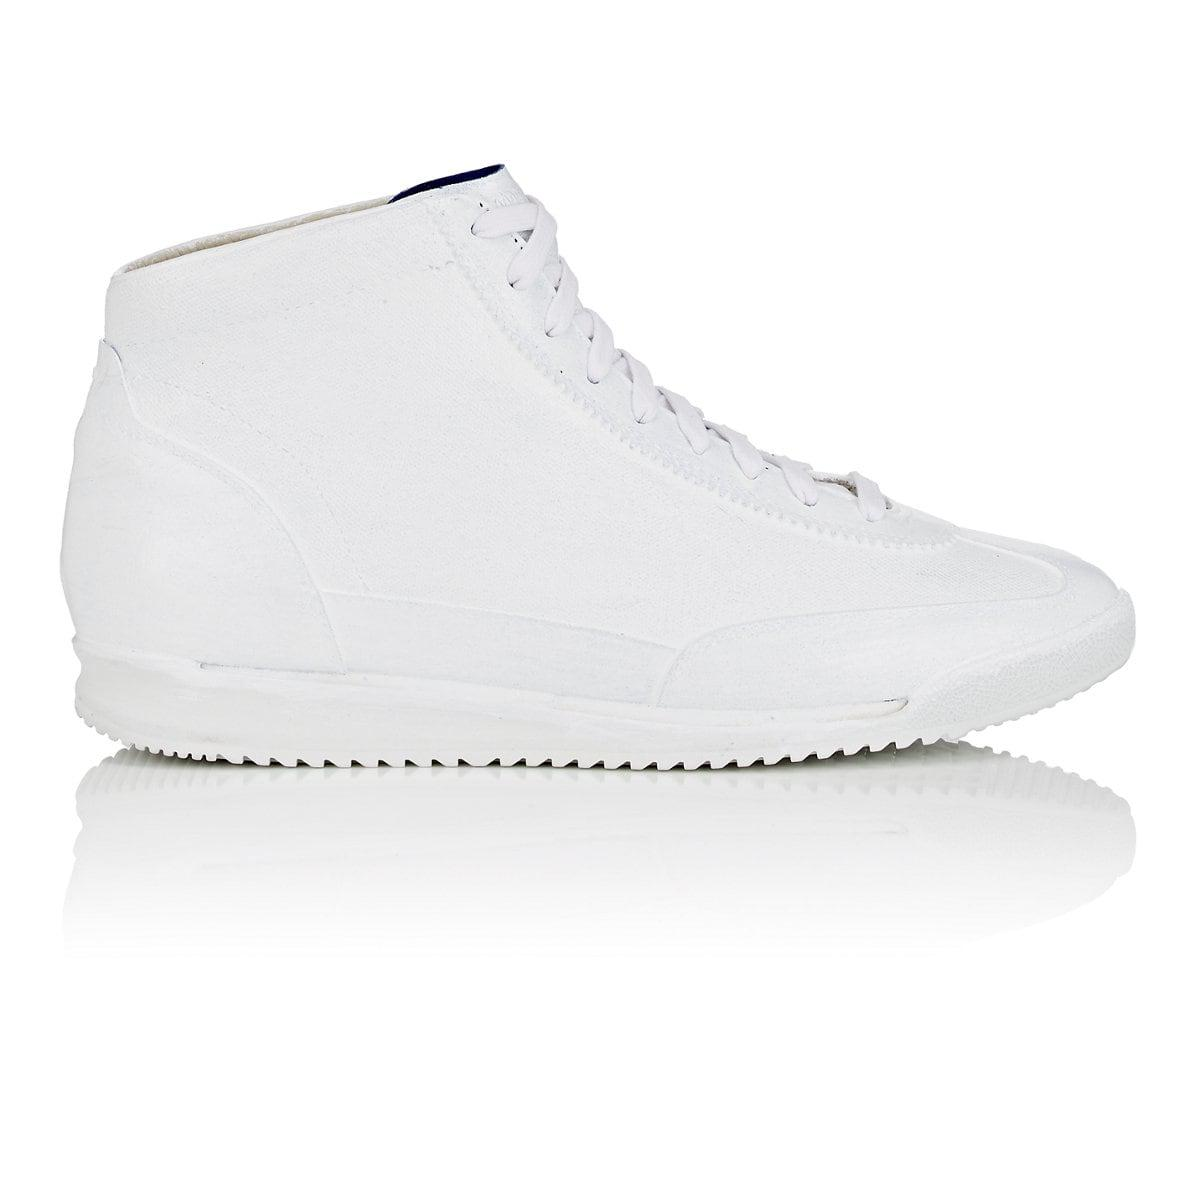 Maison Sneakers For White Coated amp; Paint Suede In Margiela Canvas rgxYAwr4